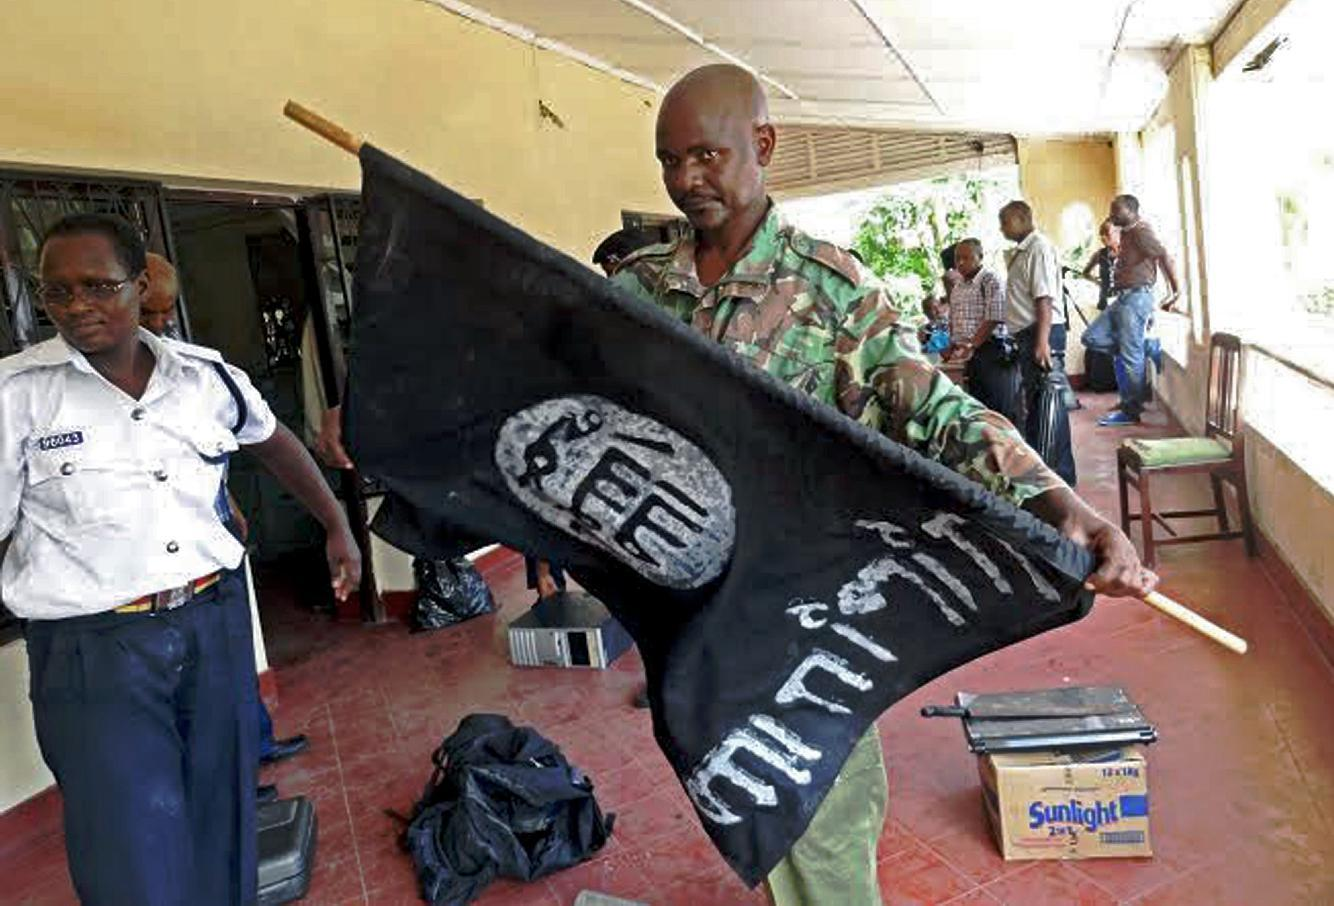 Kenyan MPs in heated debate on terror law 'that trims freedoms'